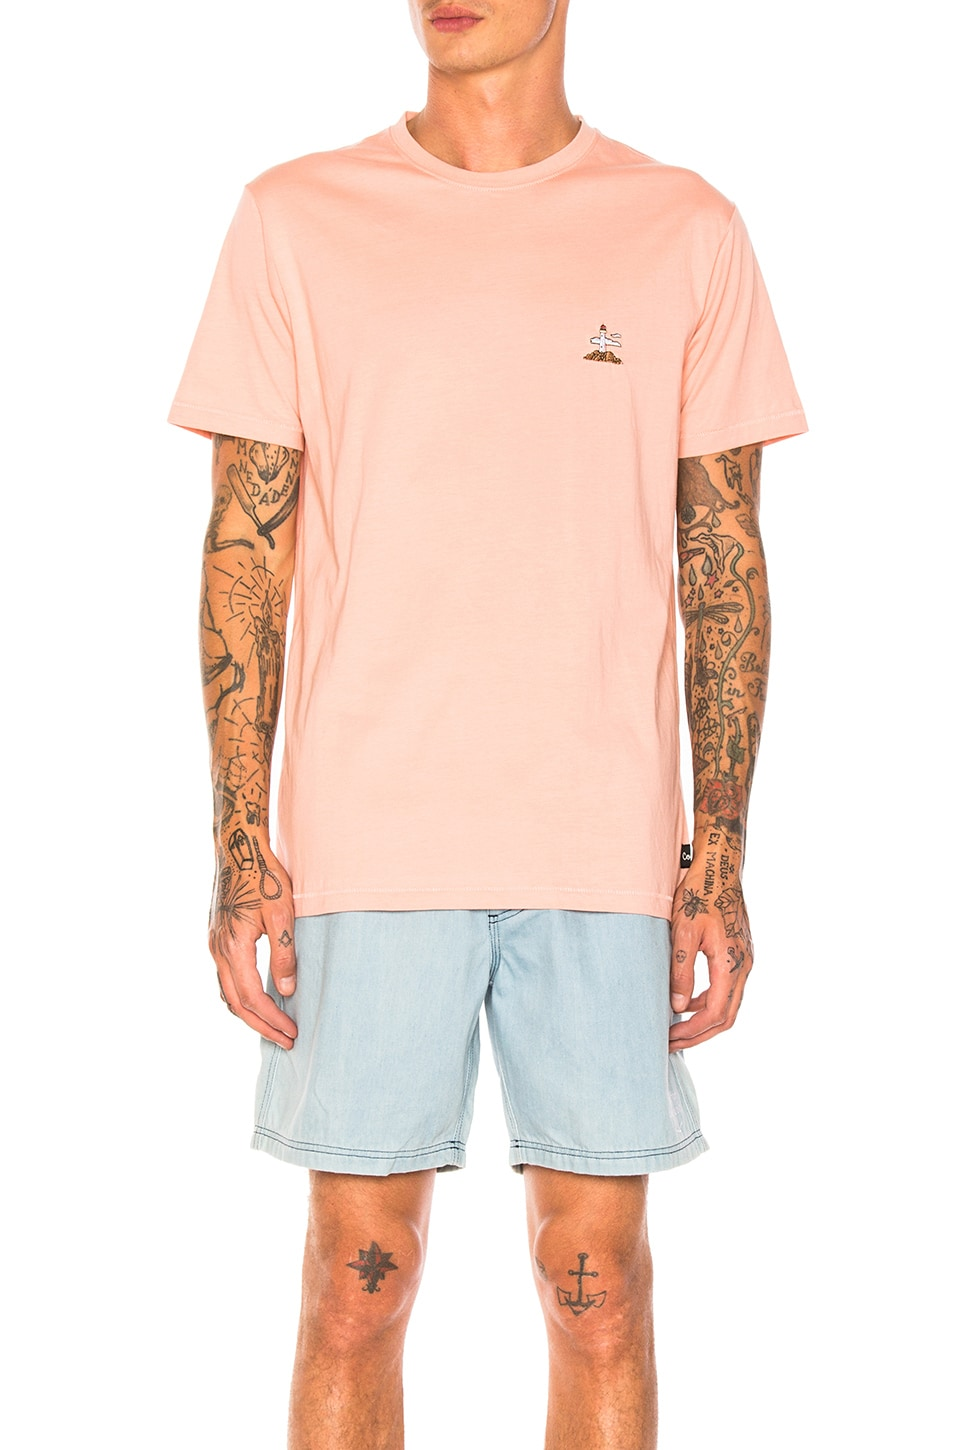 Lighthouse Tee In Pink by Barney Cools